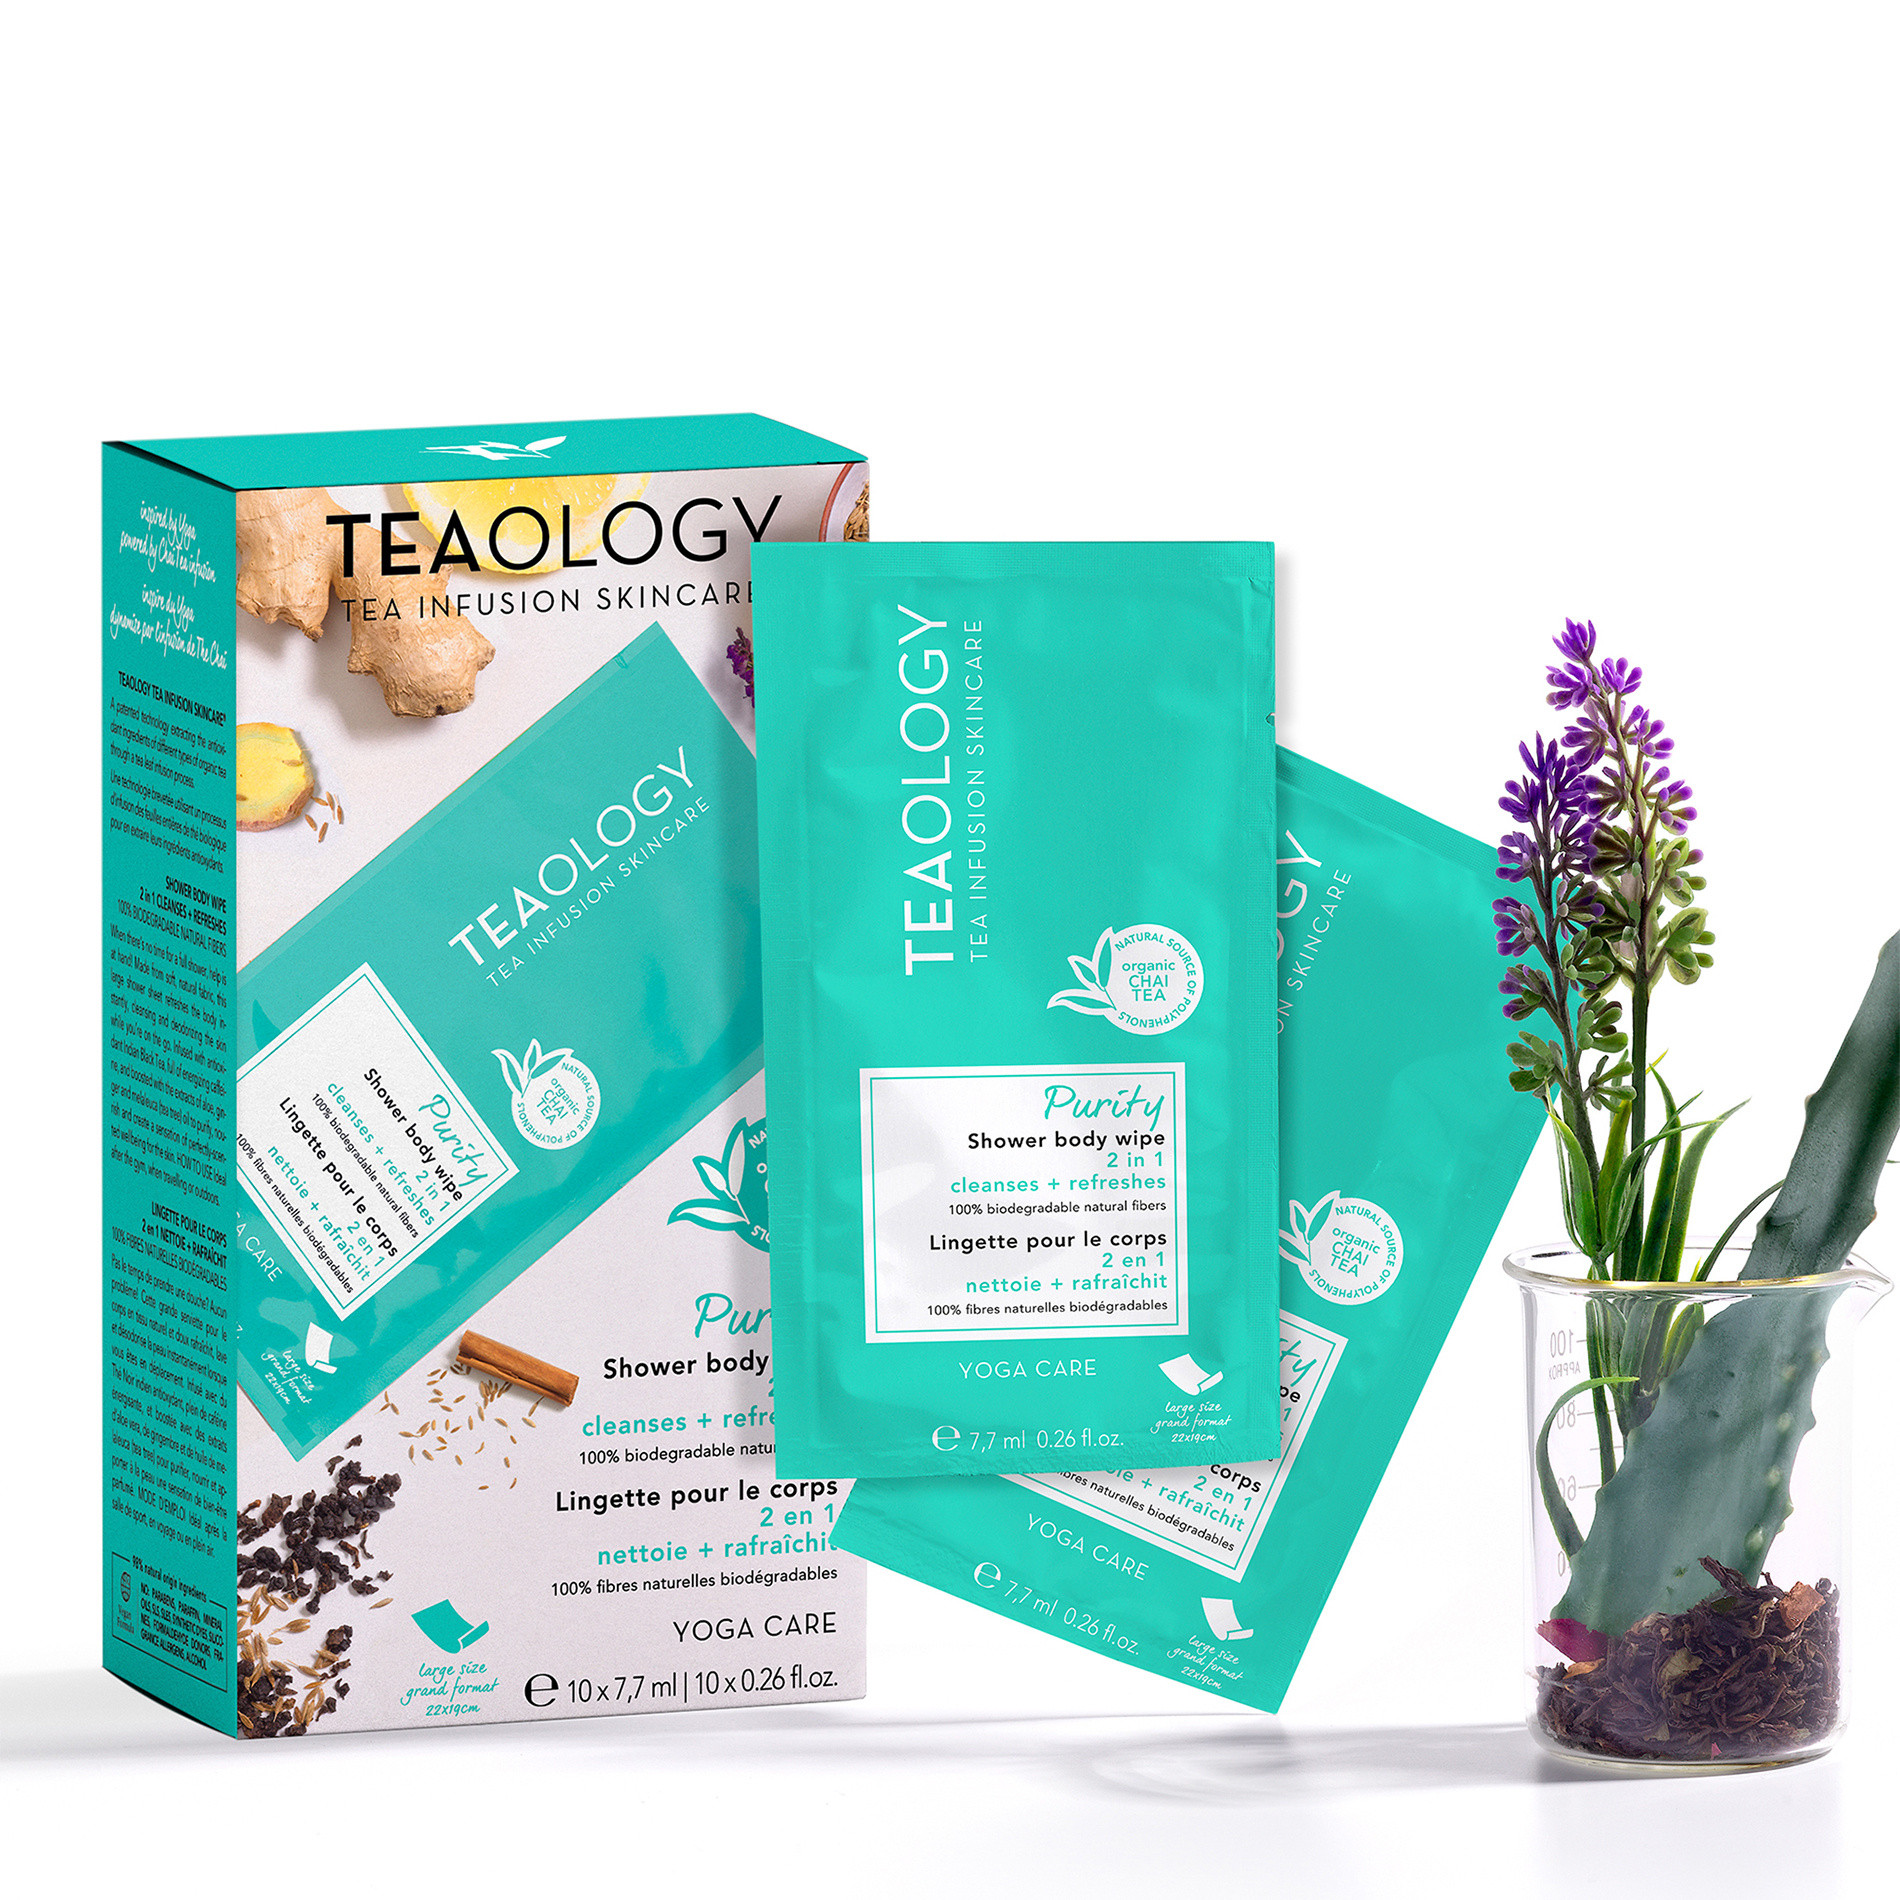 Teaology Purity Shower Body Wipe Multipack 7,7 ml  X 10, Azzurro, large image number 2